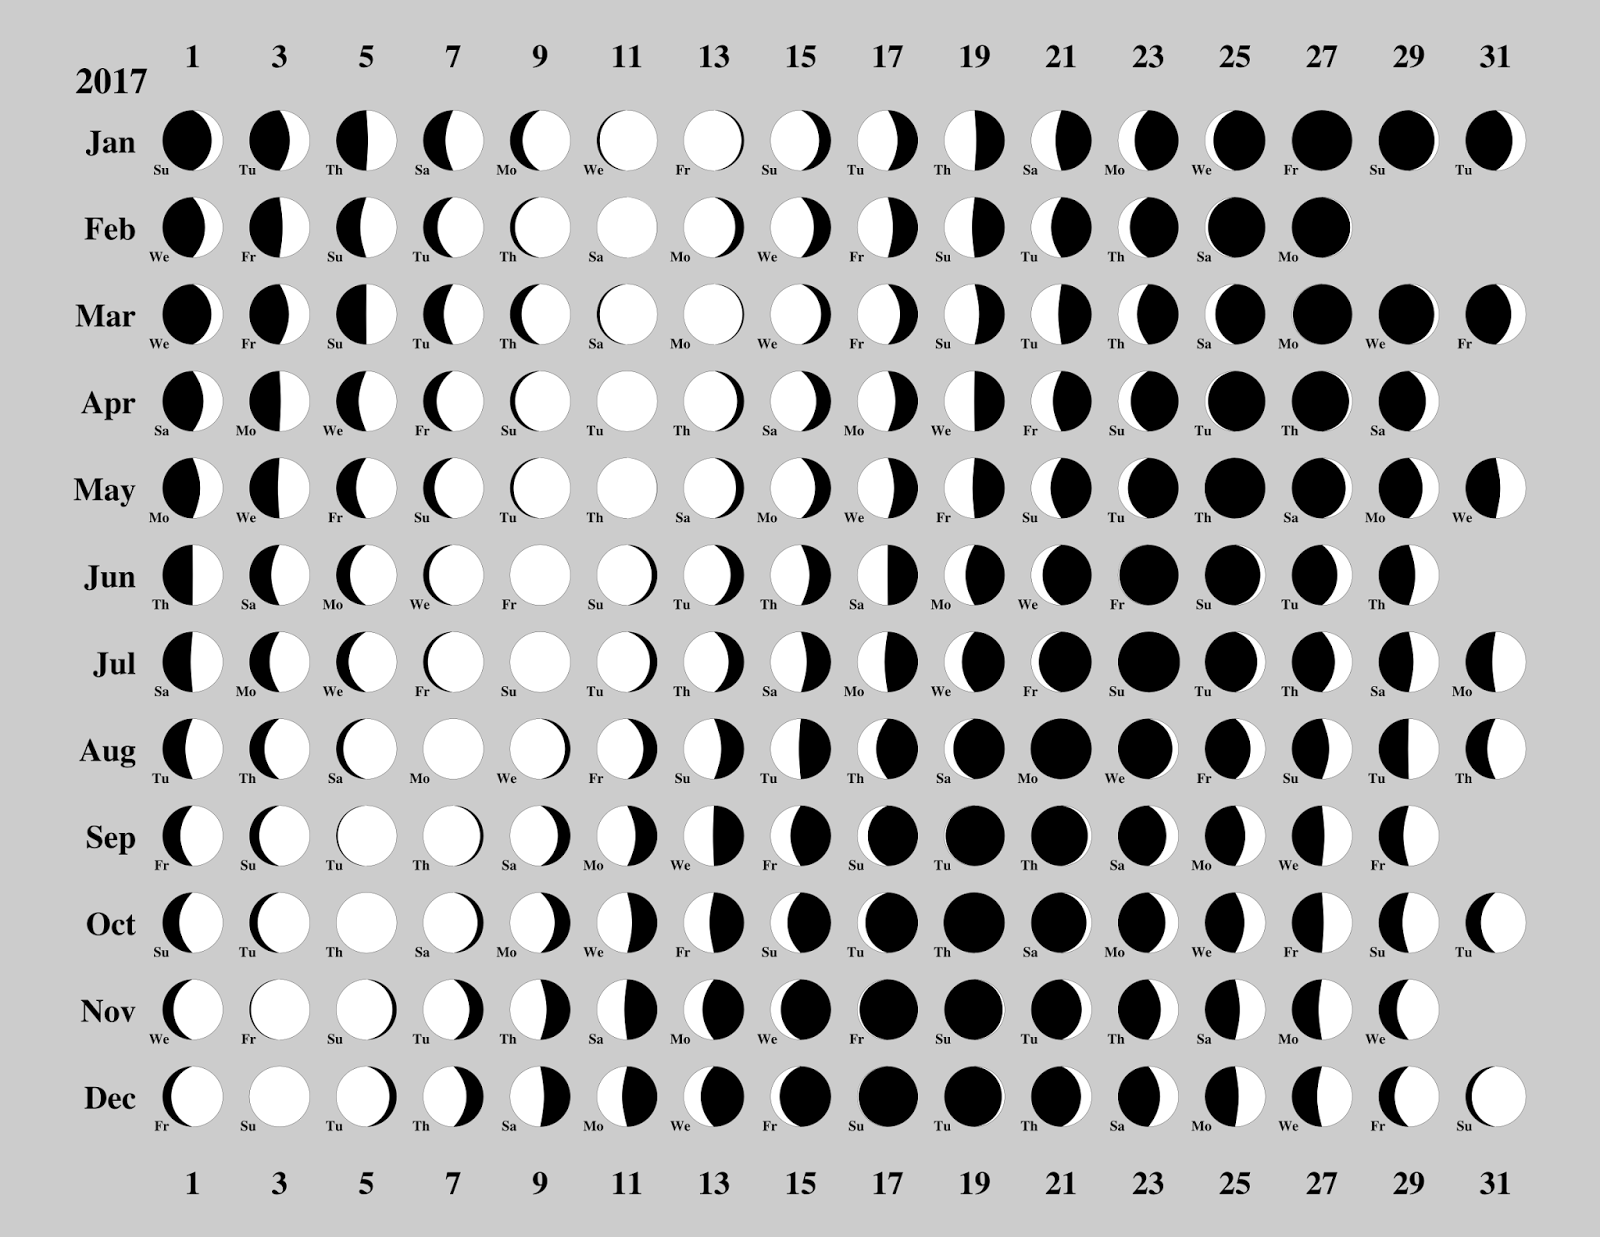 moon phase calendar 2017 moon phases calendar printable moon phases calendar with names moonconnectionmoon phases calendar next full moon september 2017